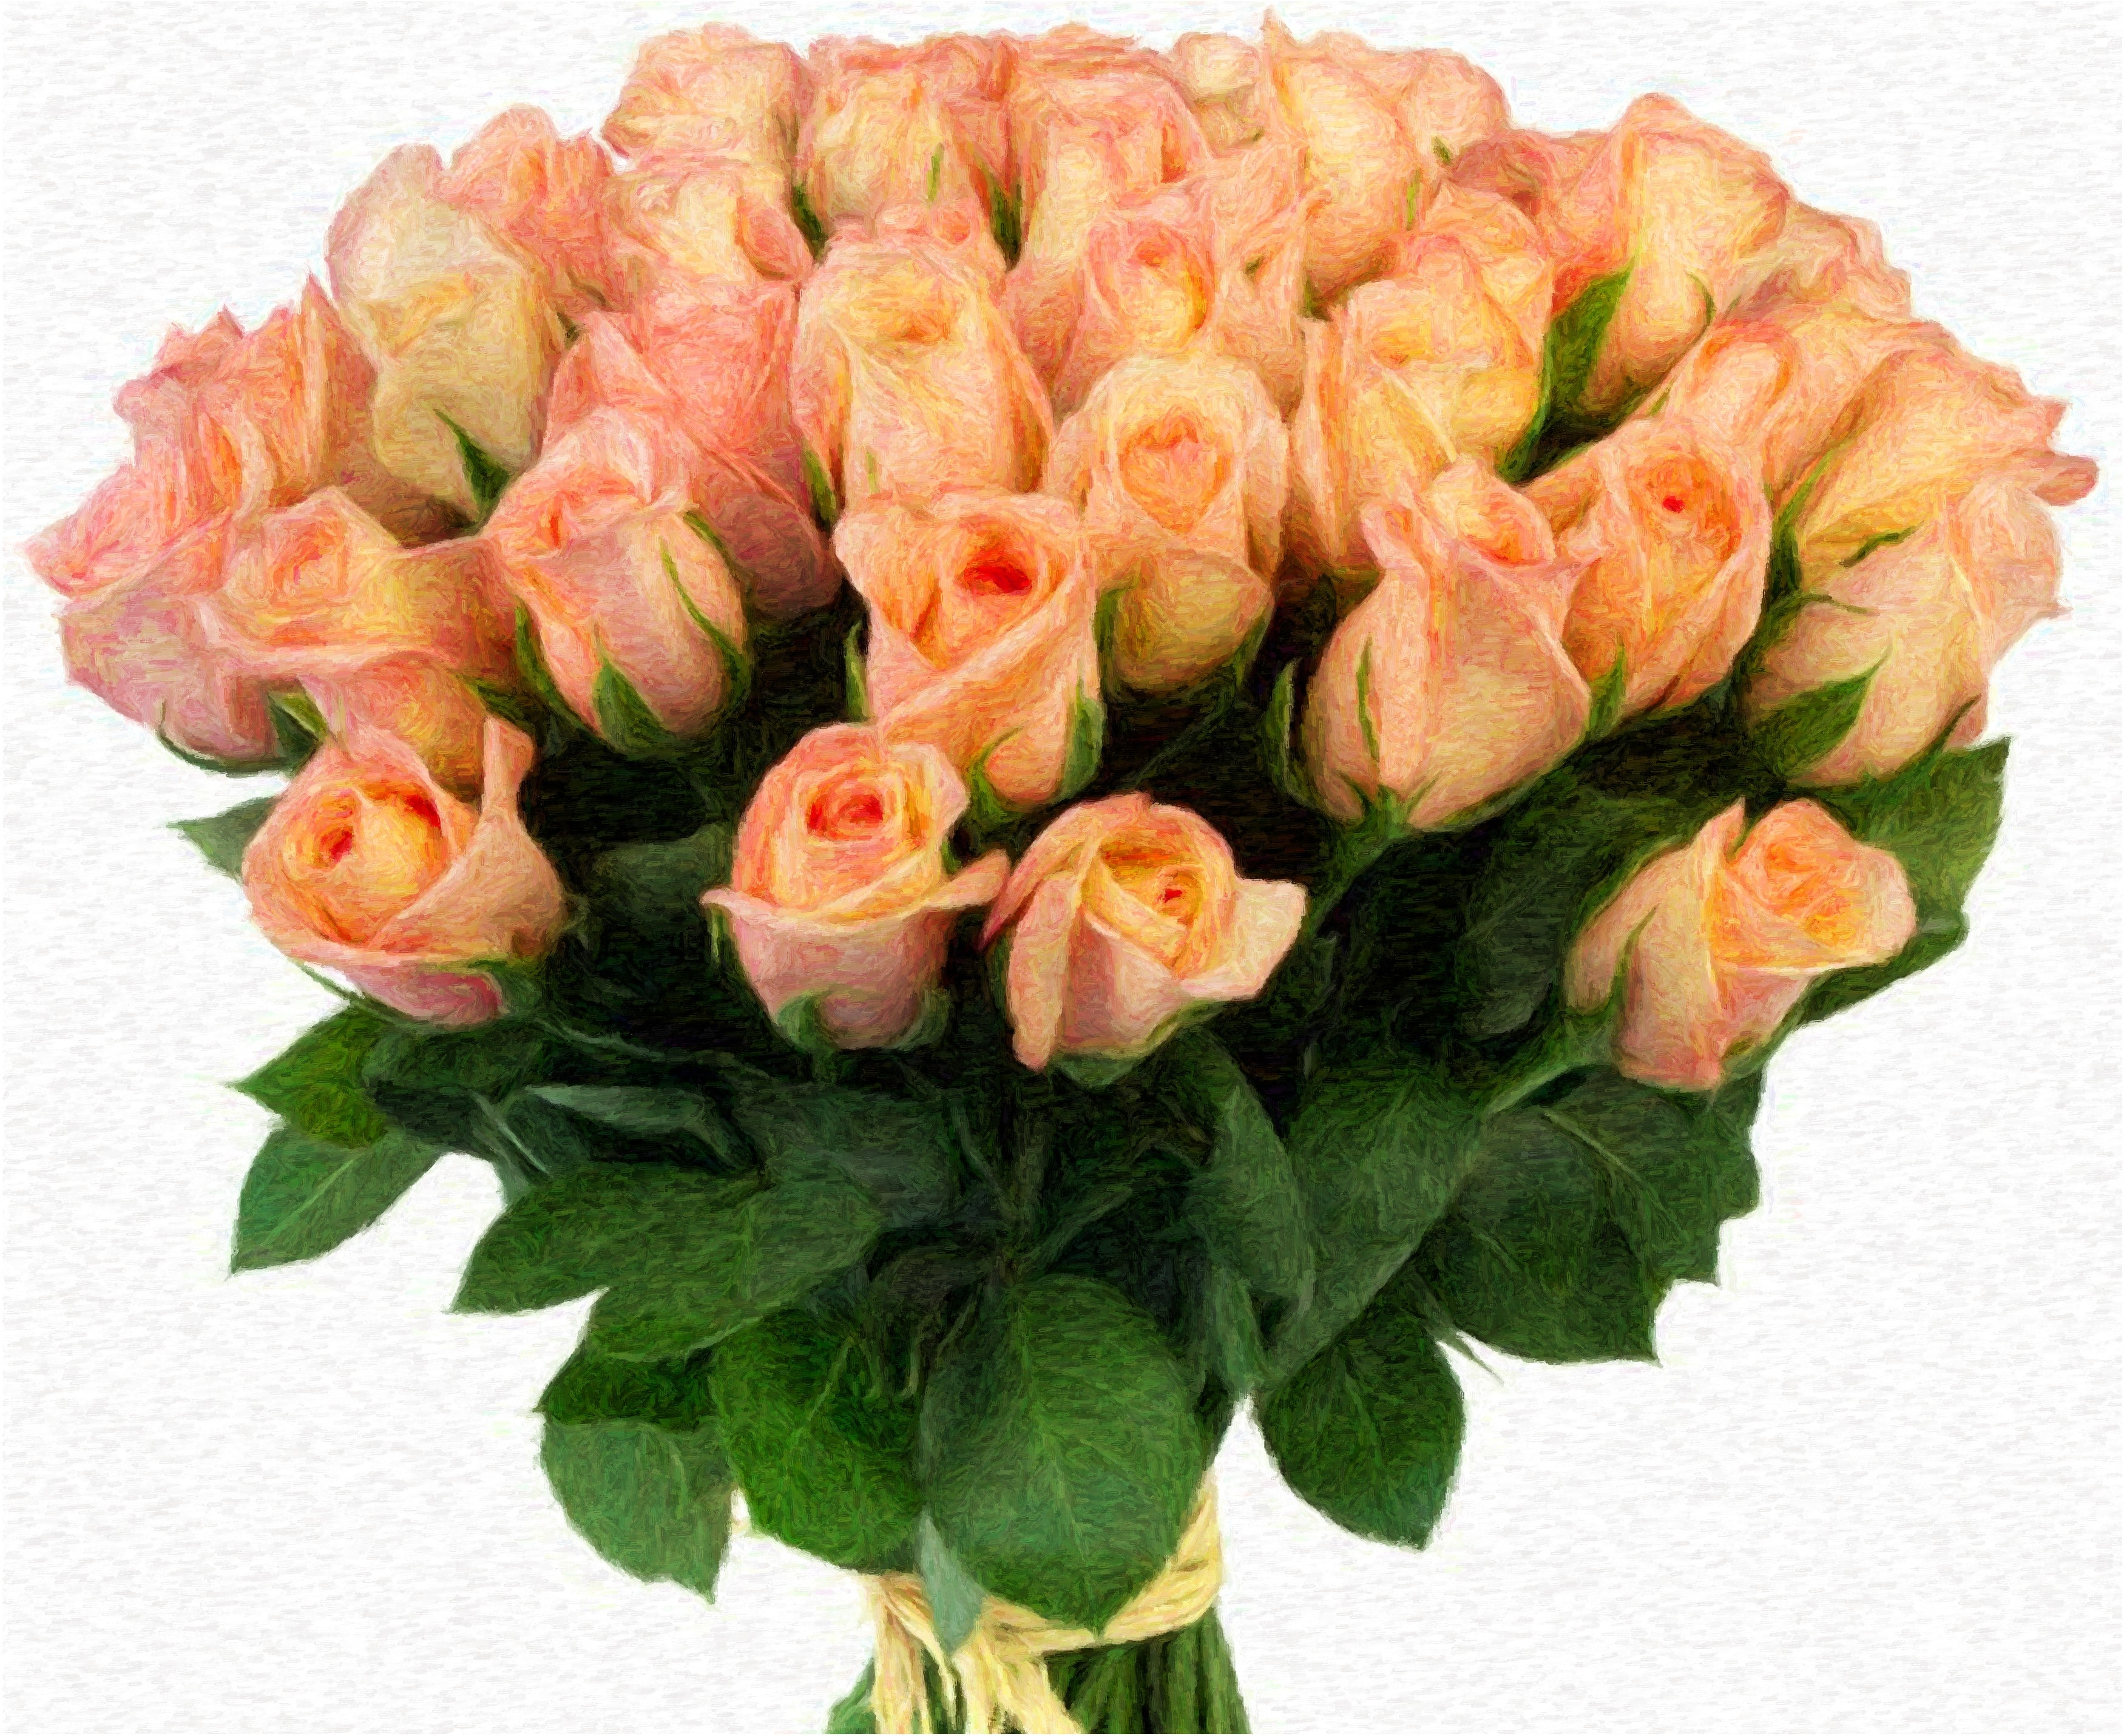 Pictures of Beautiful Bouquets of Flowers. 80 Pieces of Stunning Photos